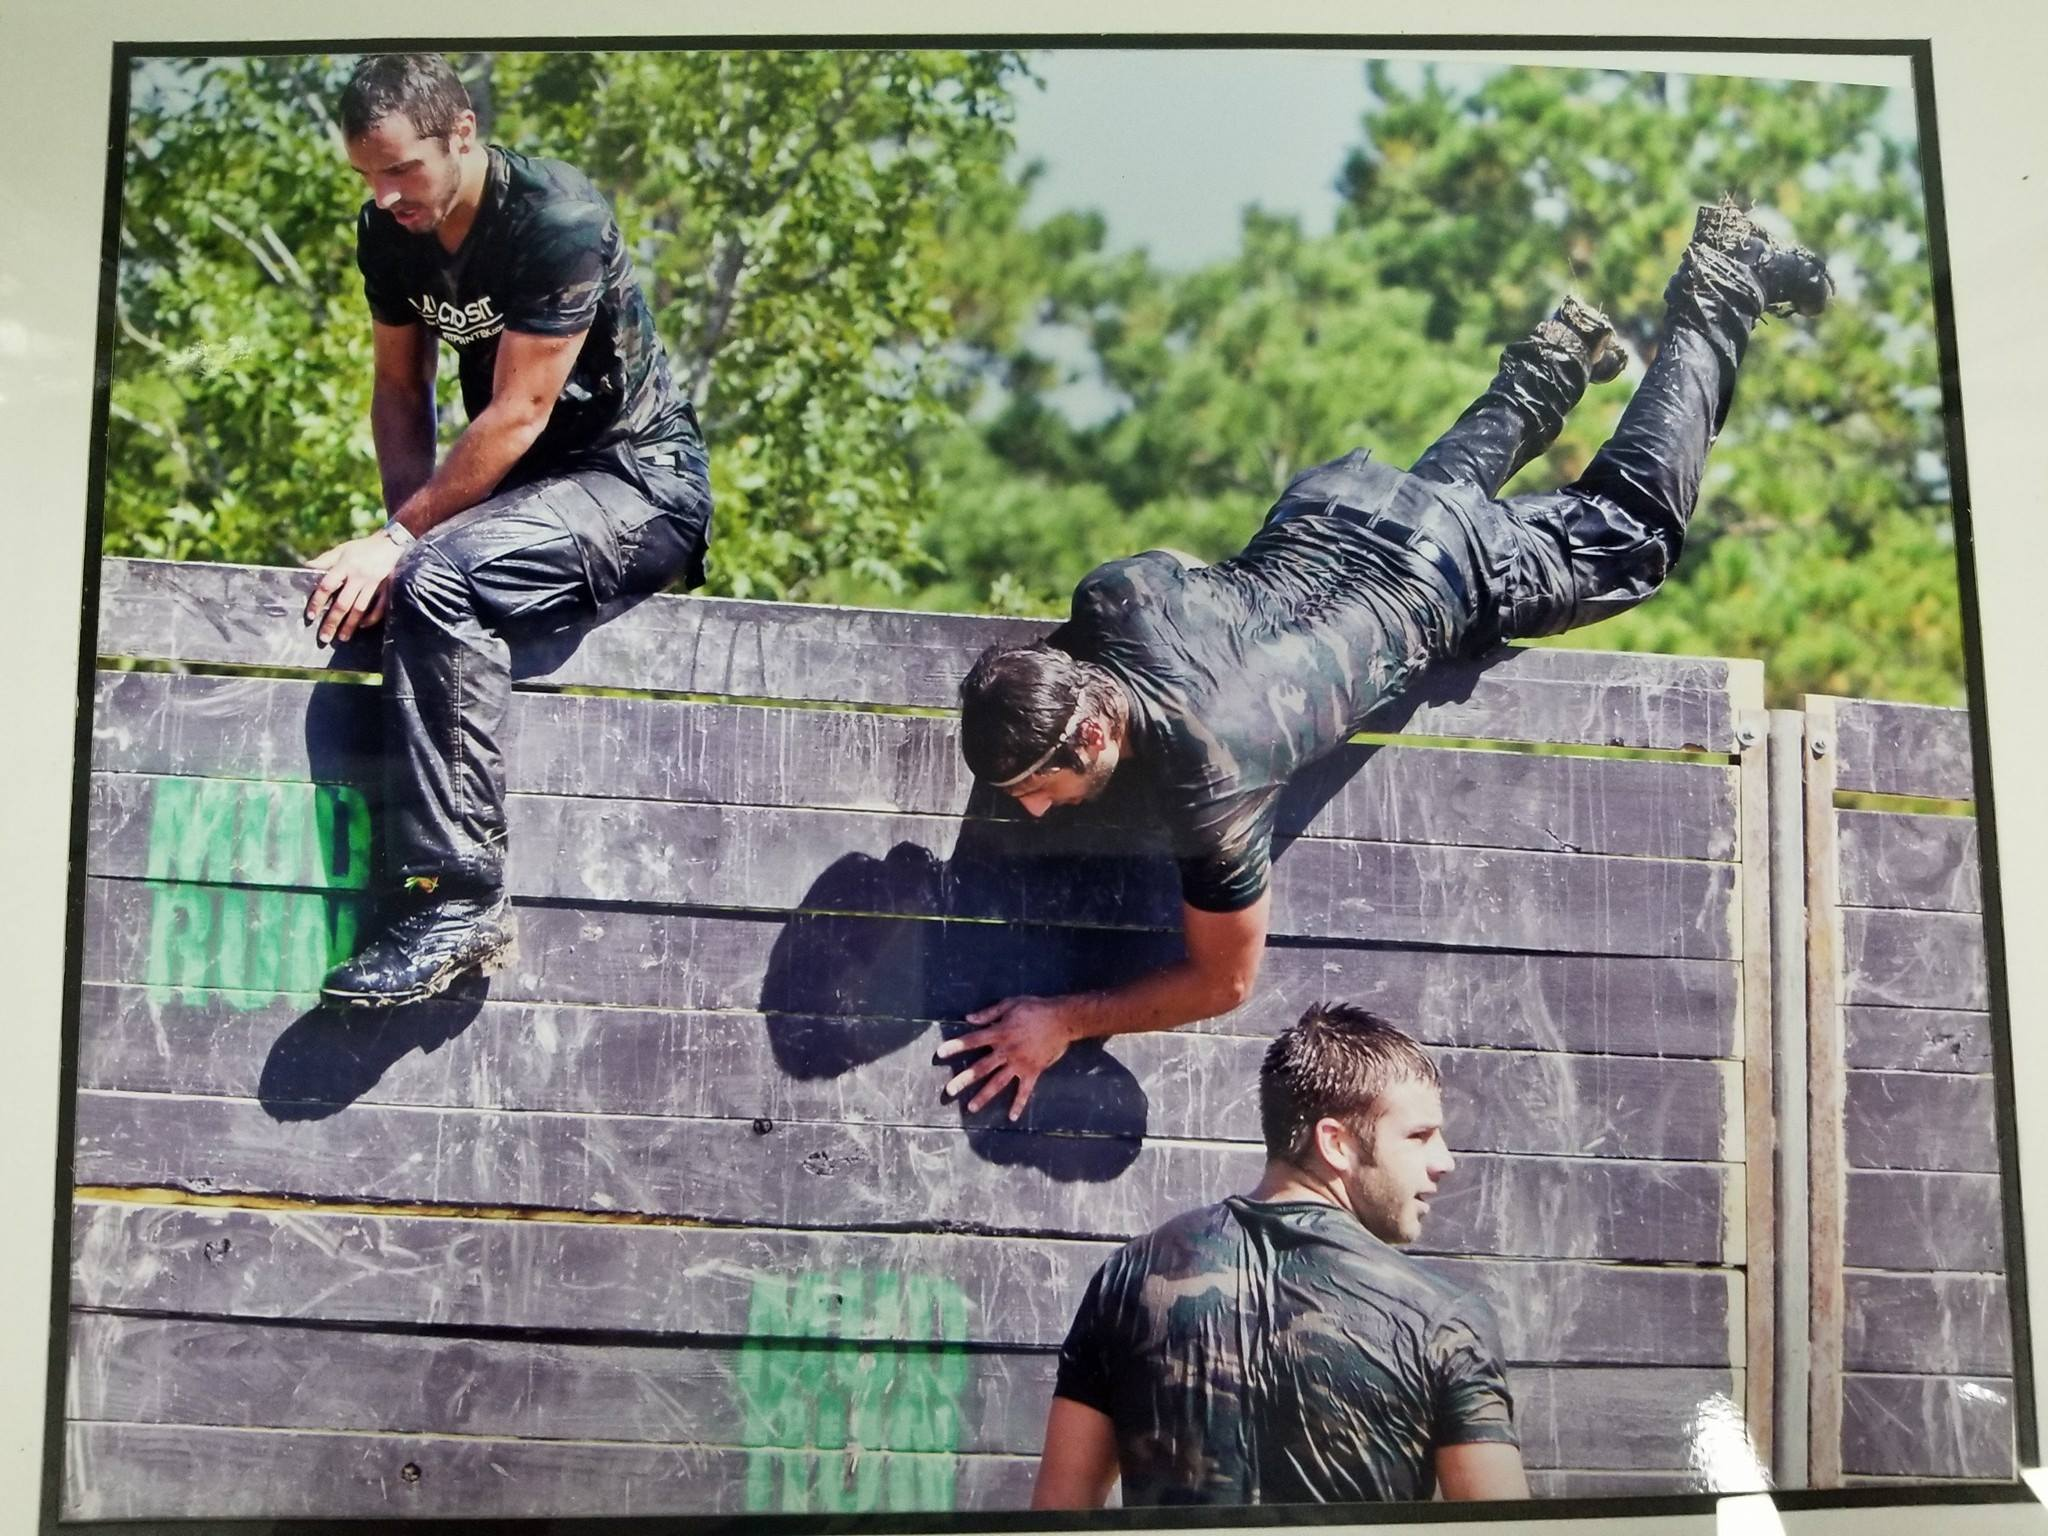 May 26th we will be having a team sign up to tackle The Original  Mud Run . This is a 10k outdoor course with over 20 obstacles along the way. On top of that the course has to be done in Boots and Pants. To prepare for the race we will be doing a 6 week camp meeting every Sunday at 11am starting April 15th. We will be doing specific training to prepare for the Mud Run. If interested please sign up at front desk.  Here is a picture of the original owners of Skyline CrossFit tackling the Mud Run in 2011.